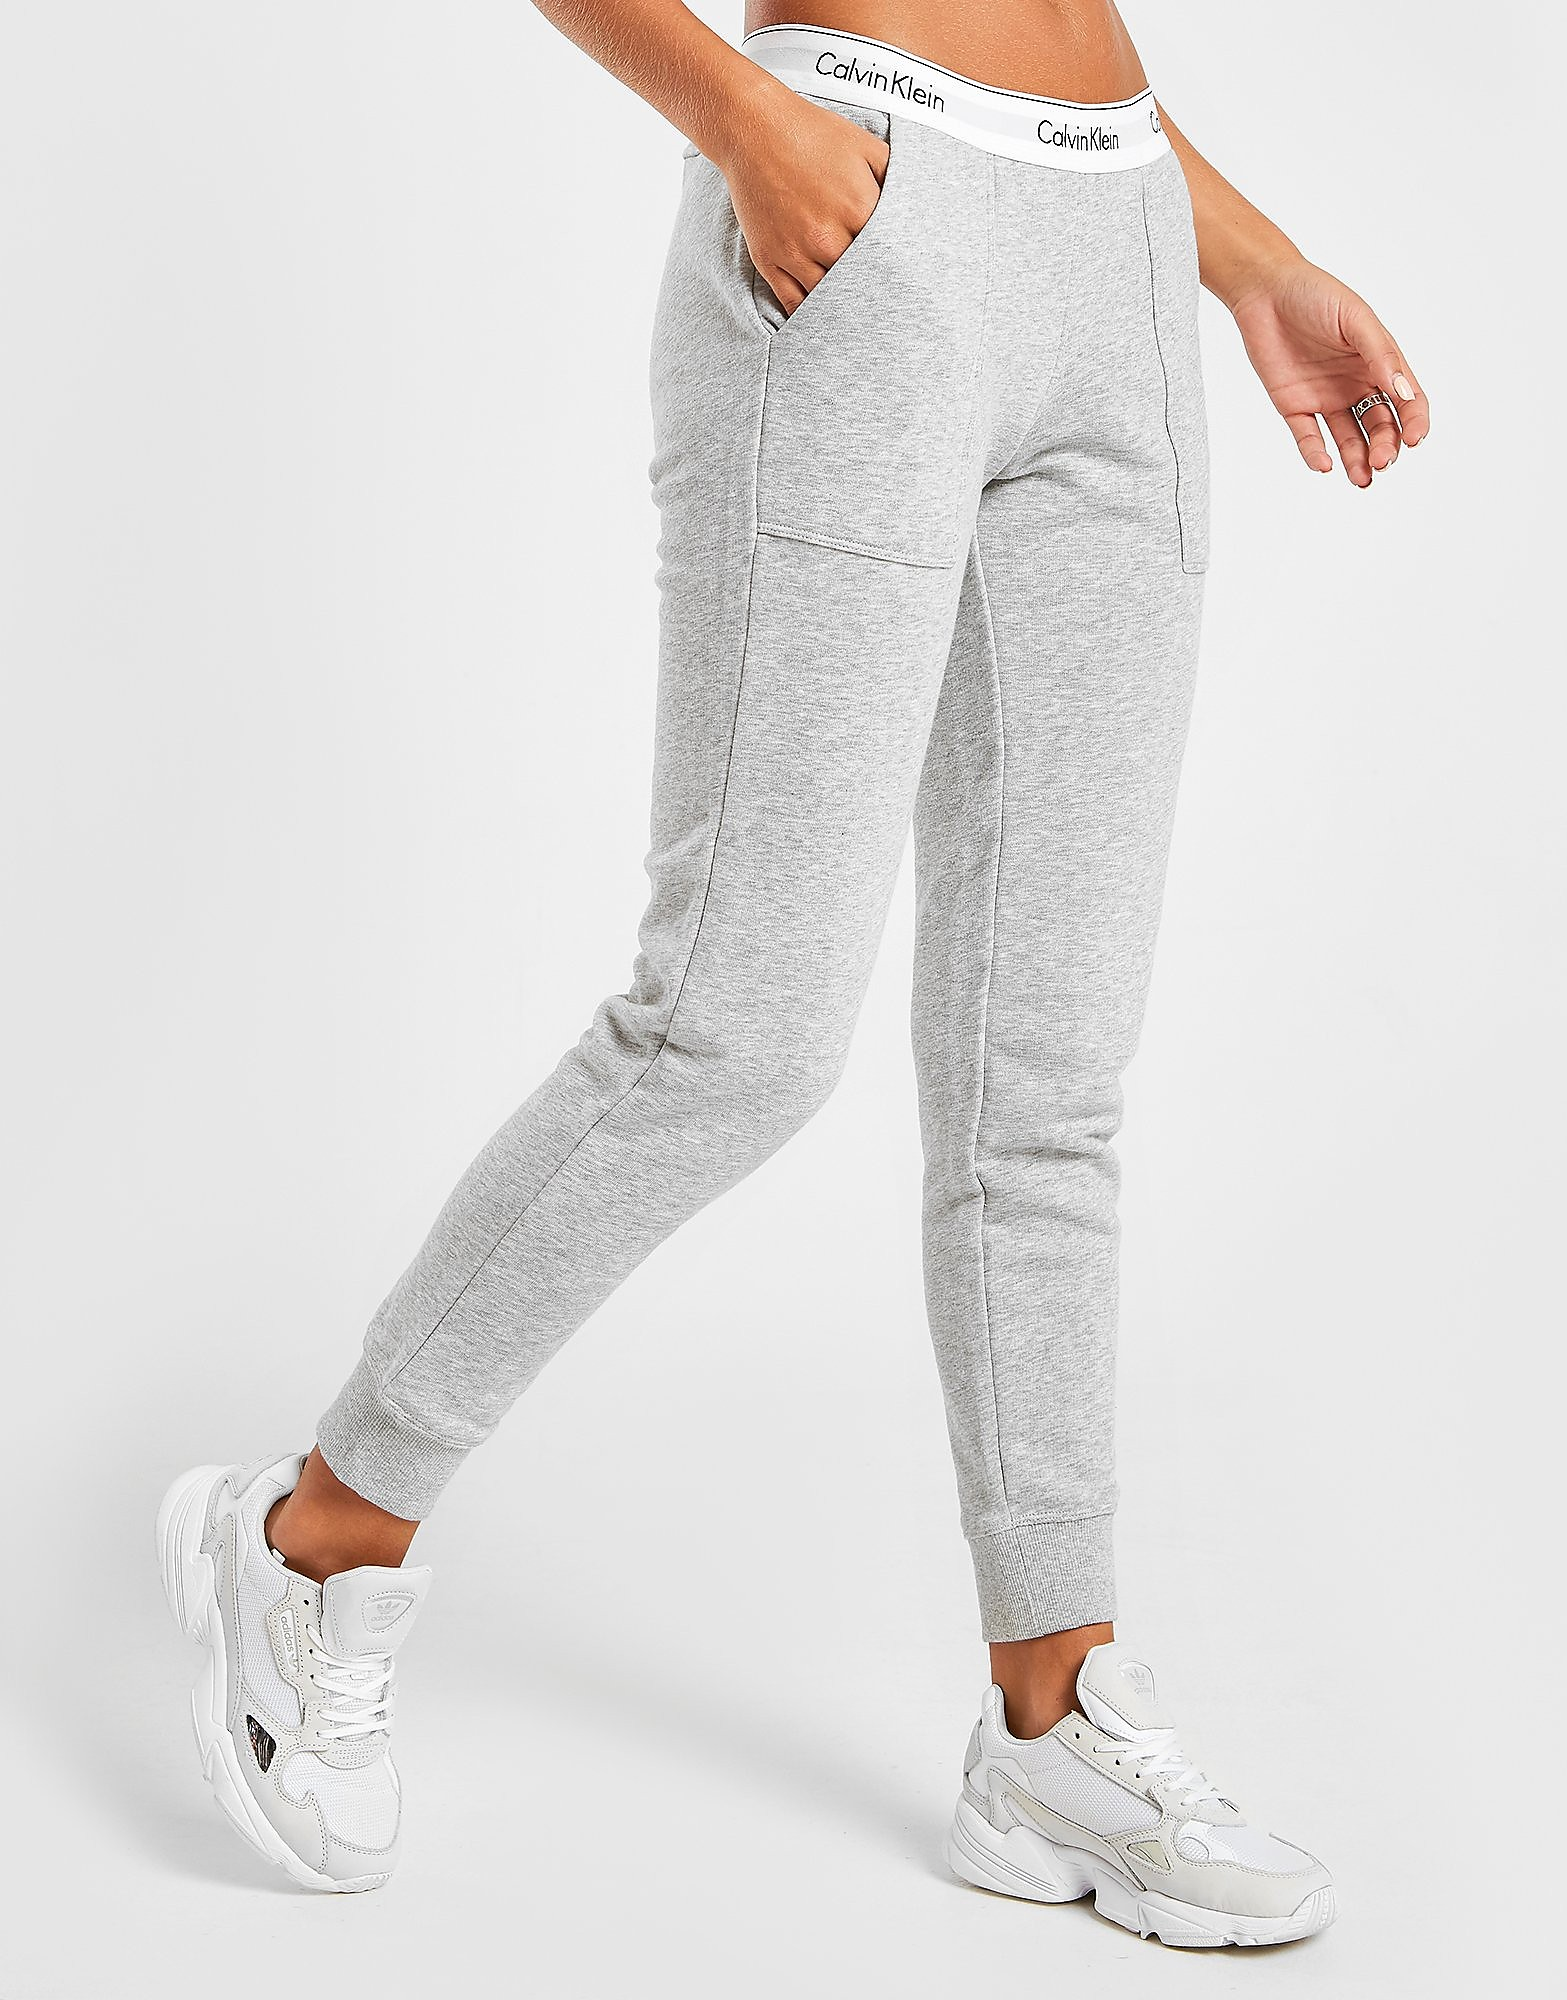 Calvin Klein Track Pants